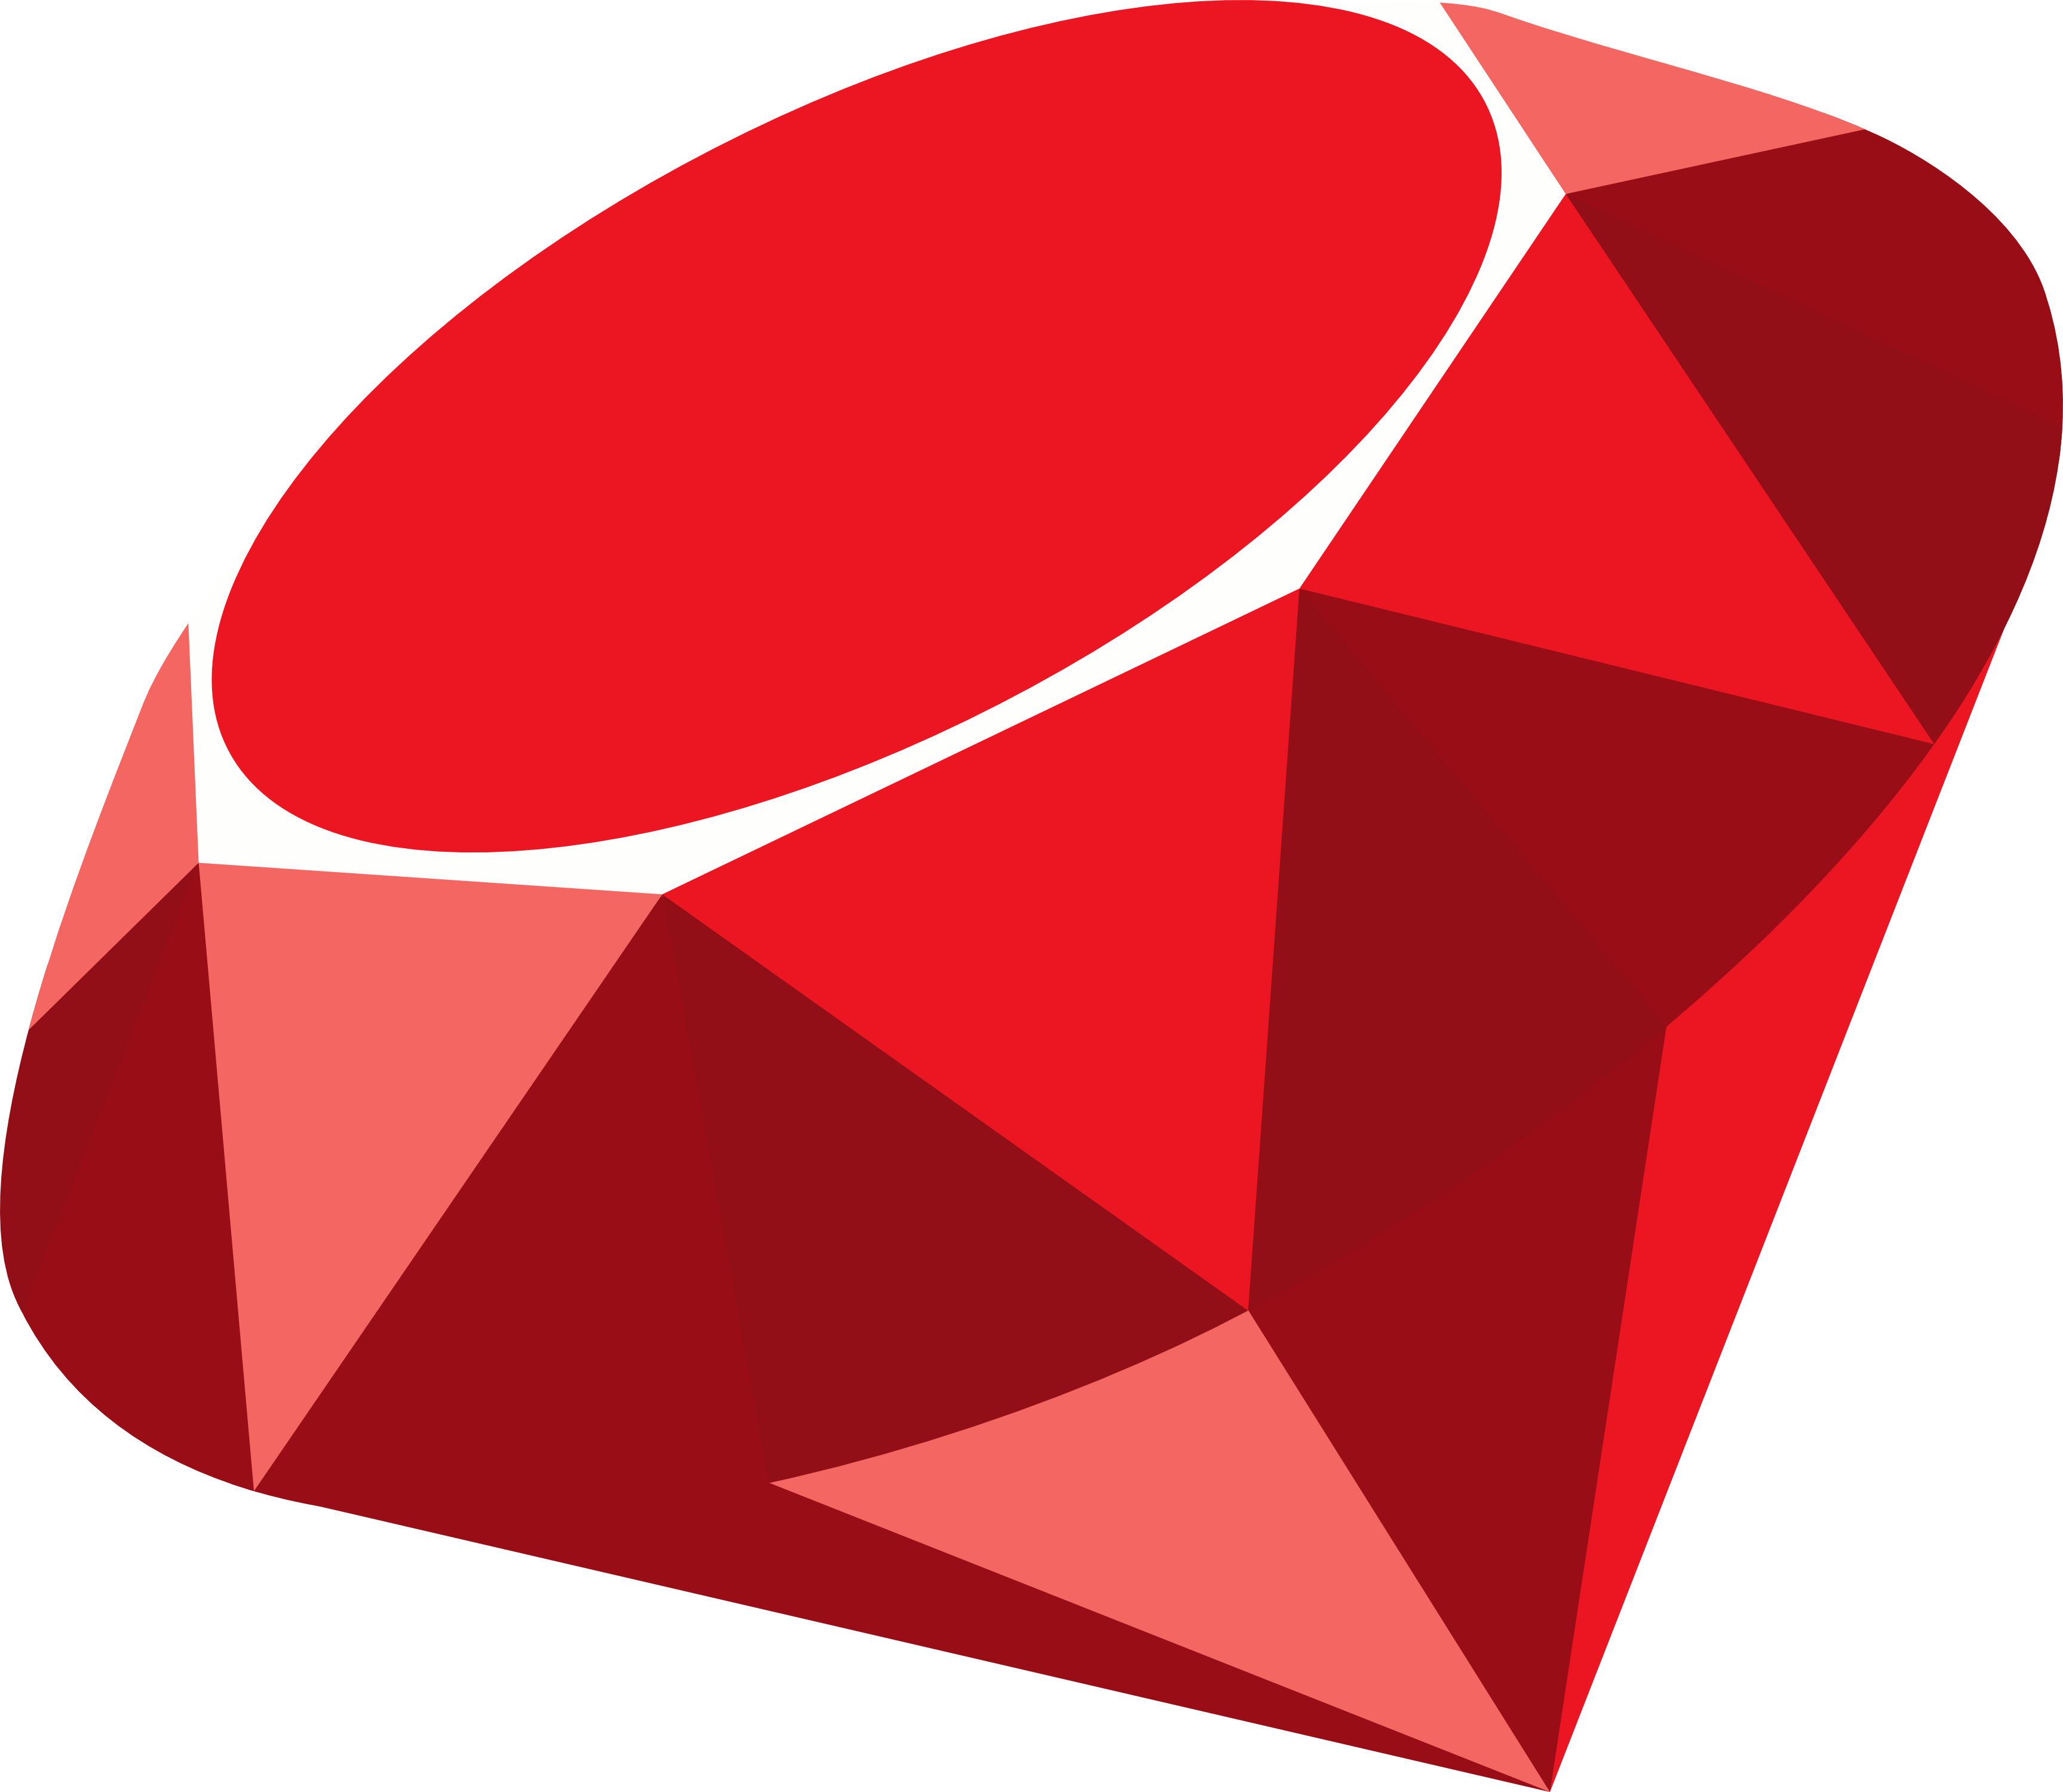 Stone clip ruby. Gem png image purepng